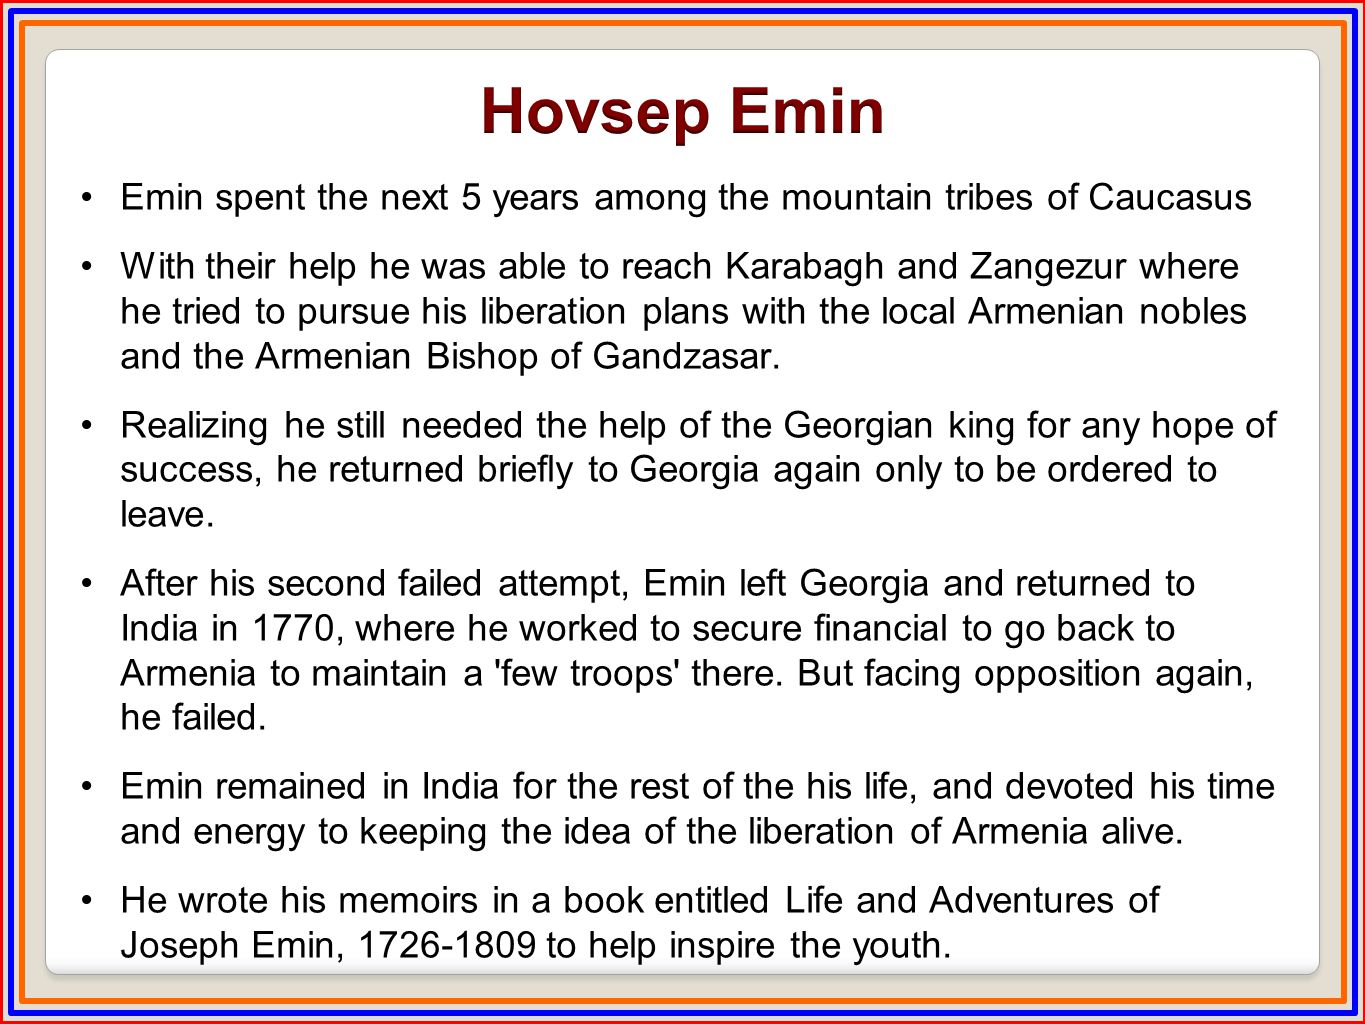 Emin spent the next 5 years among the mountain tribes of Caucasus With their help he was able to reach Karabagh and Zangezur where he tried to pursue his liberation plans with the local Armenian nobles and the Armenian Bishop of Gandzasar.